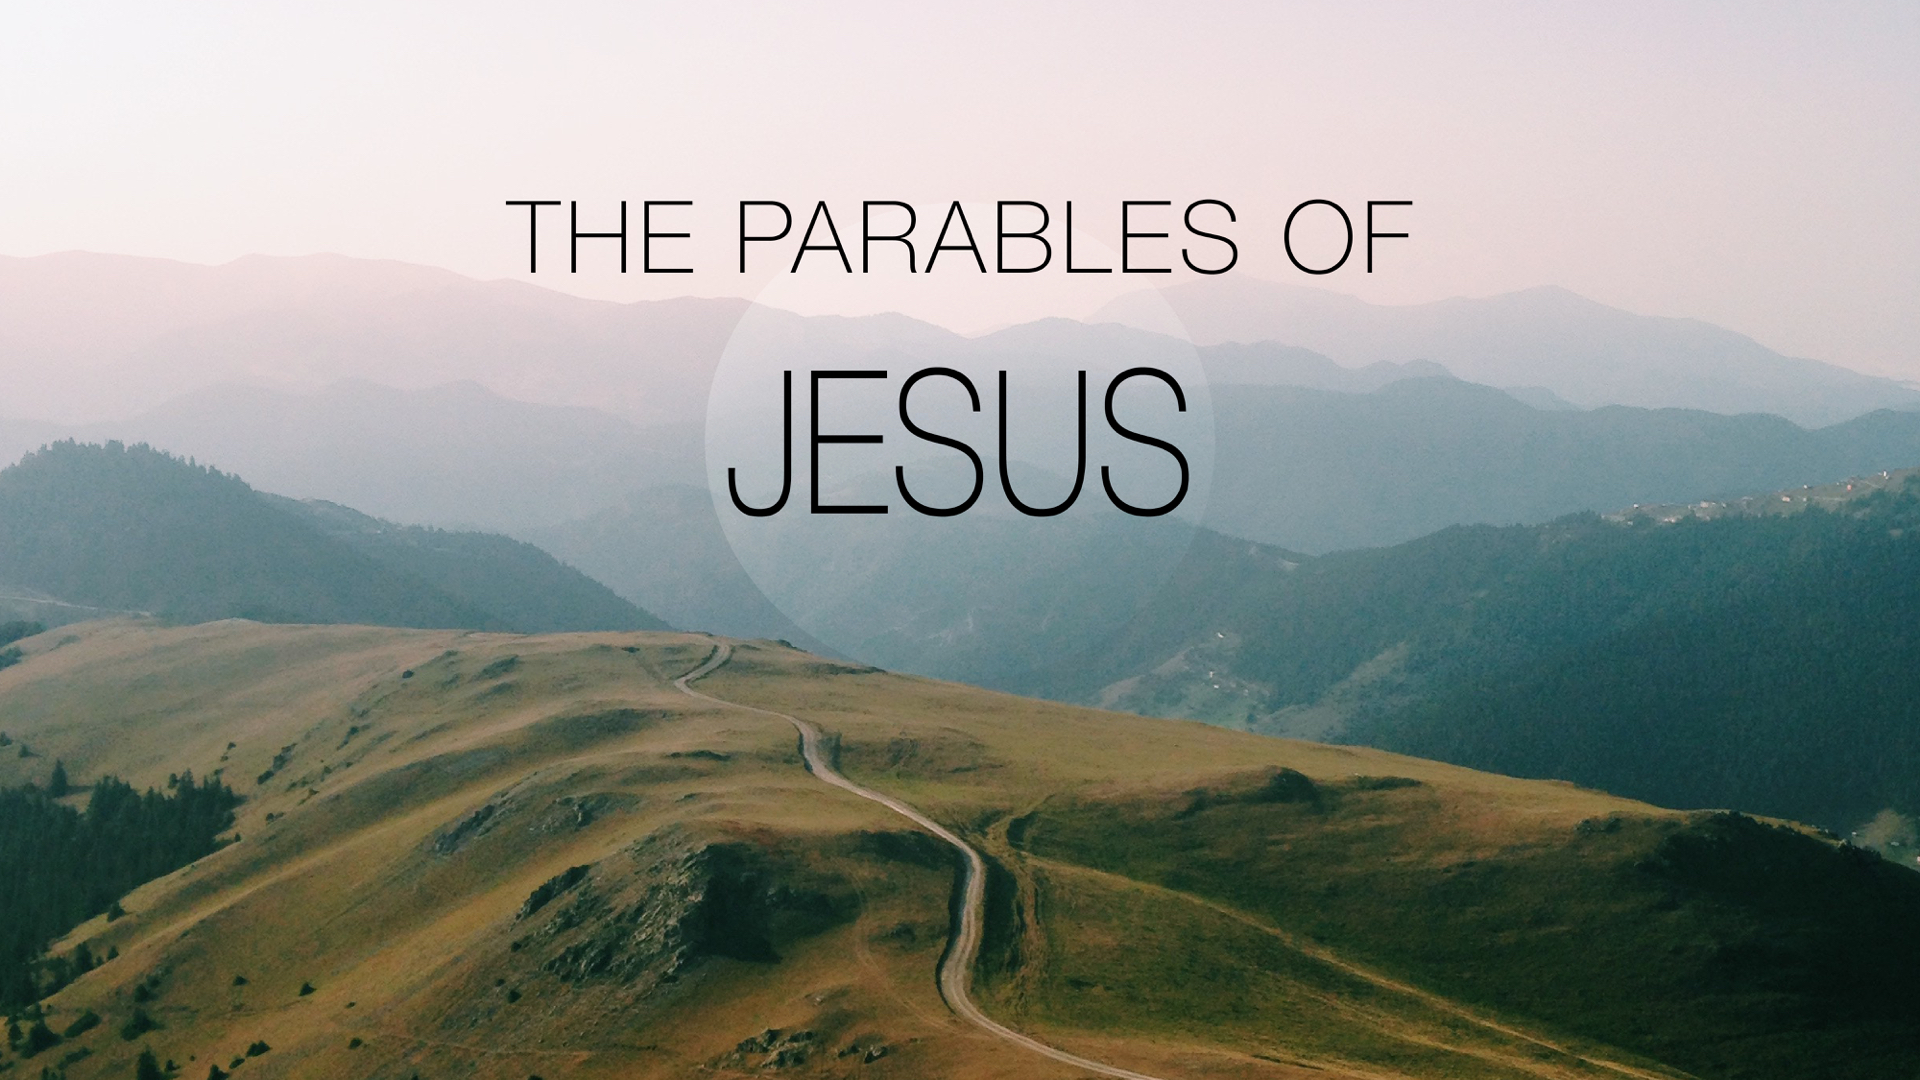 Parables of Jesus slide